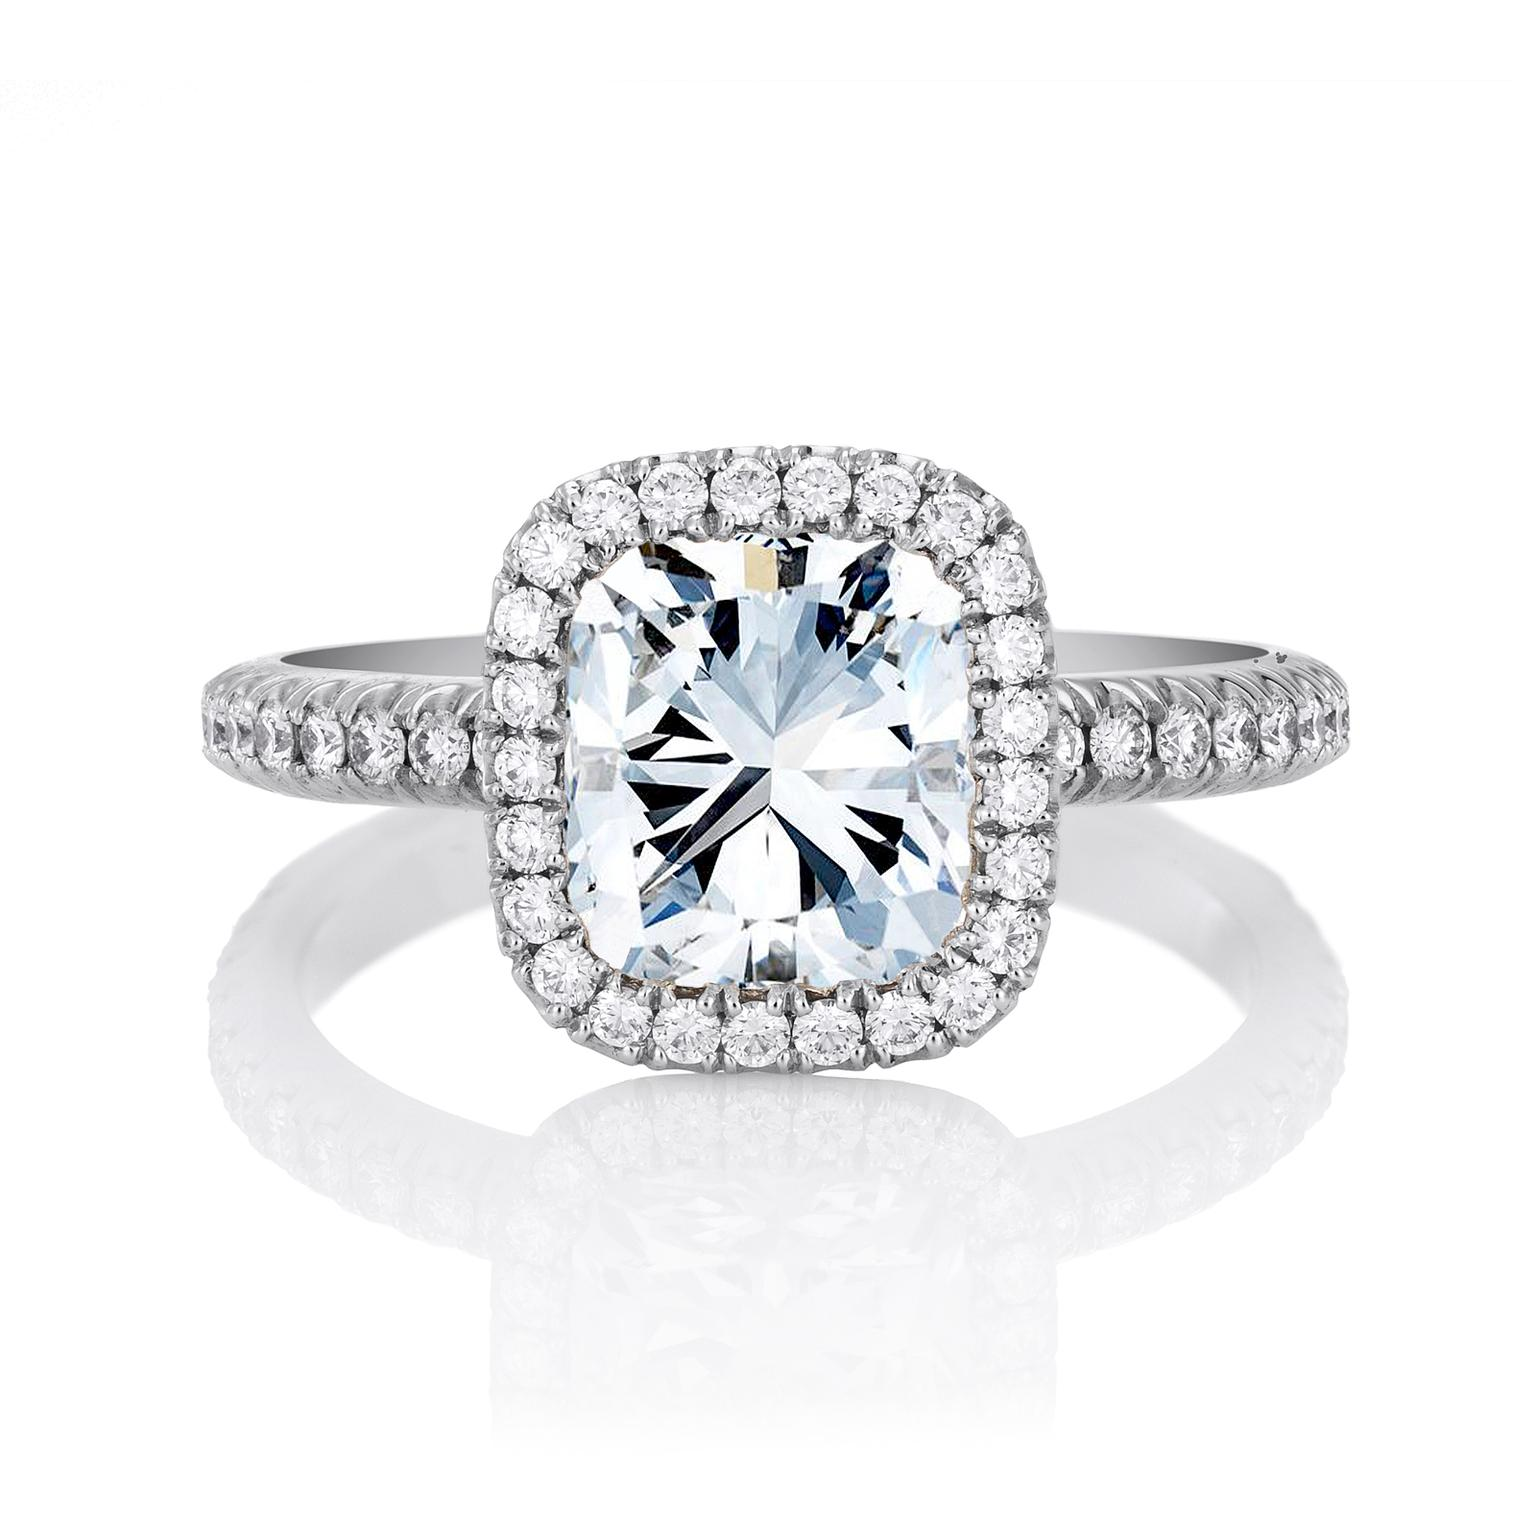 De Beers Aura cushion-cut solitaire diamond engagement ring in platinum